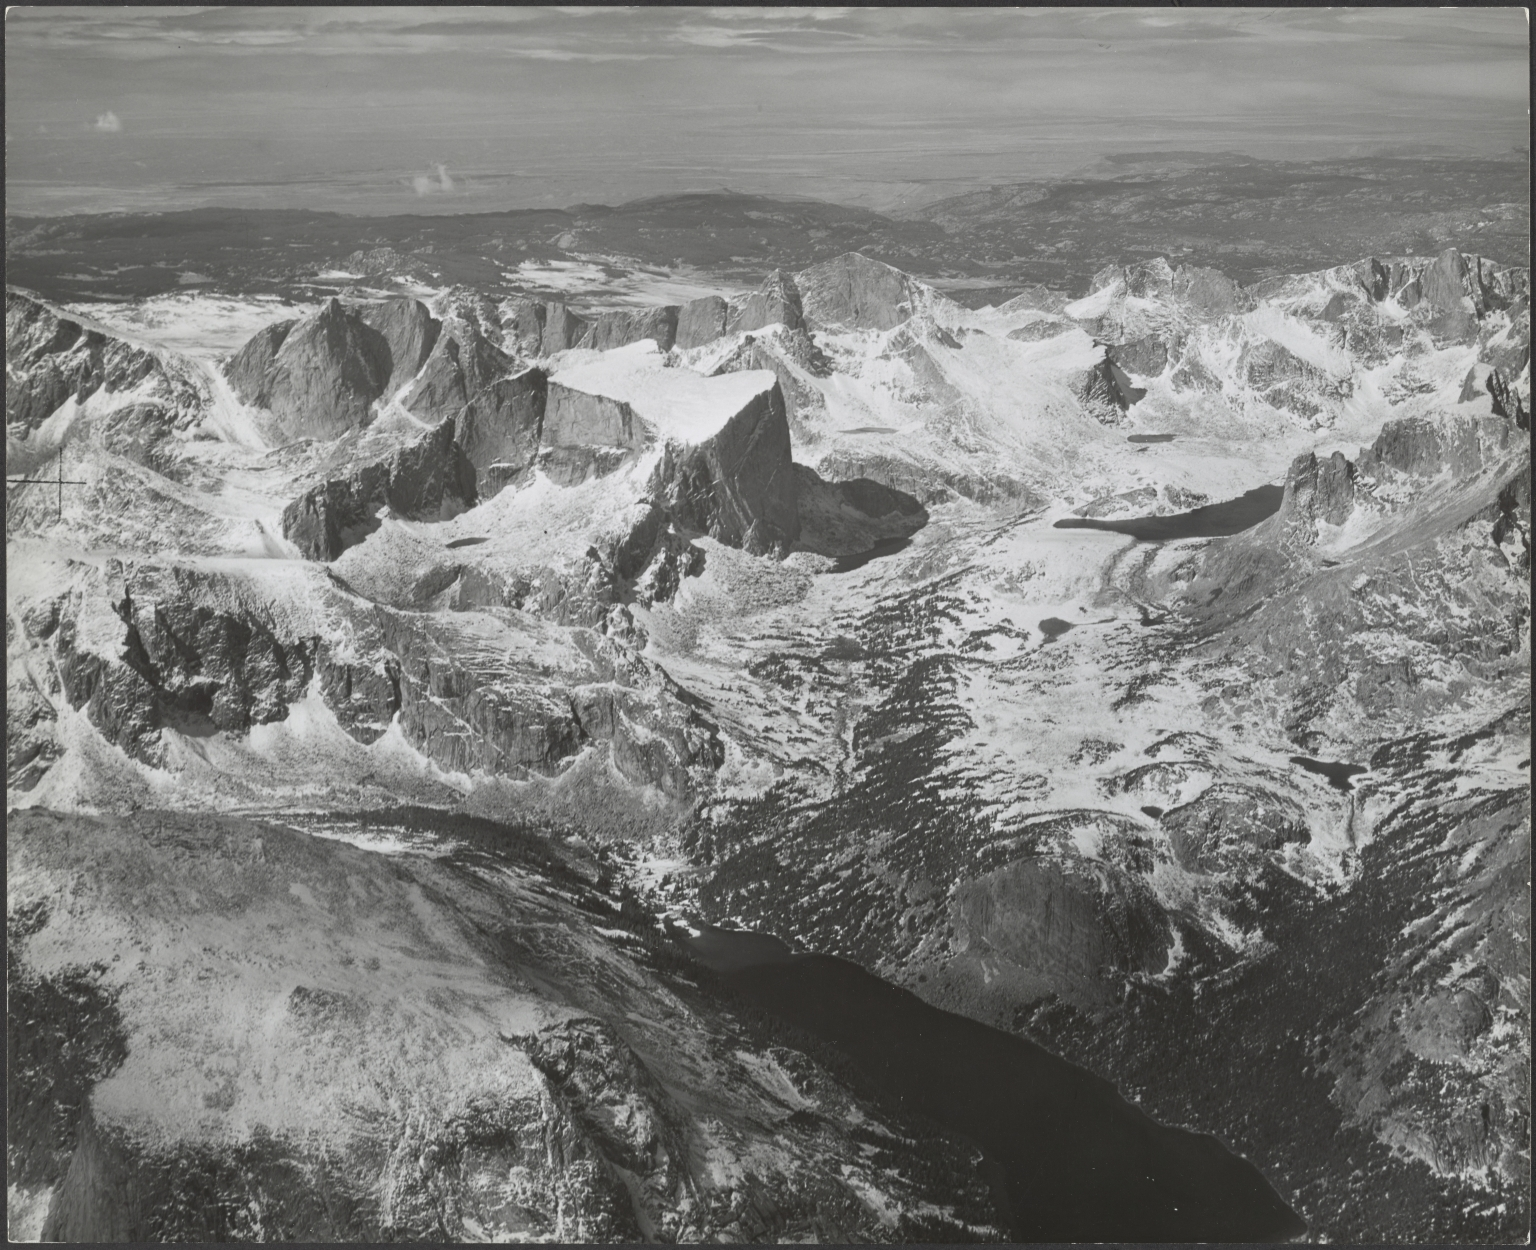 Glacier on Mount Hooker, aerial photograph roll no. 22 exposure no. 48, Wyoming